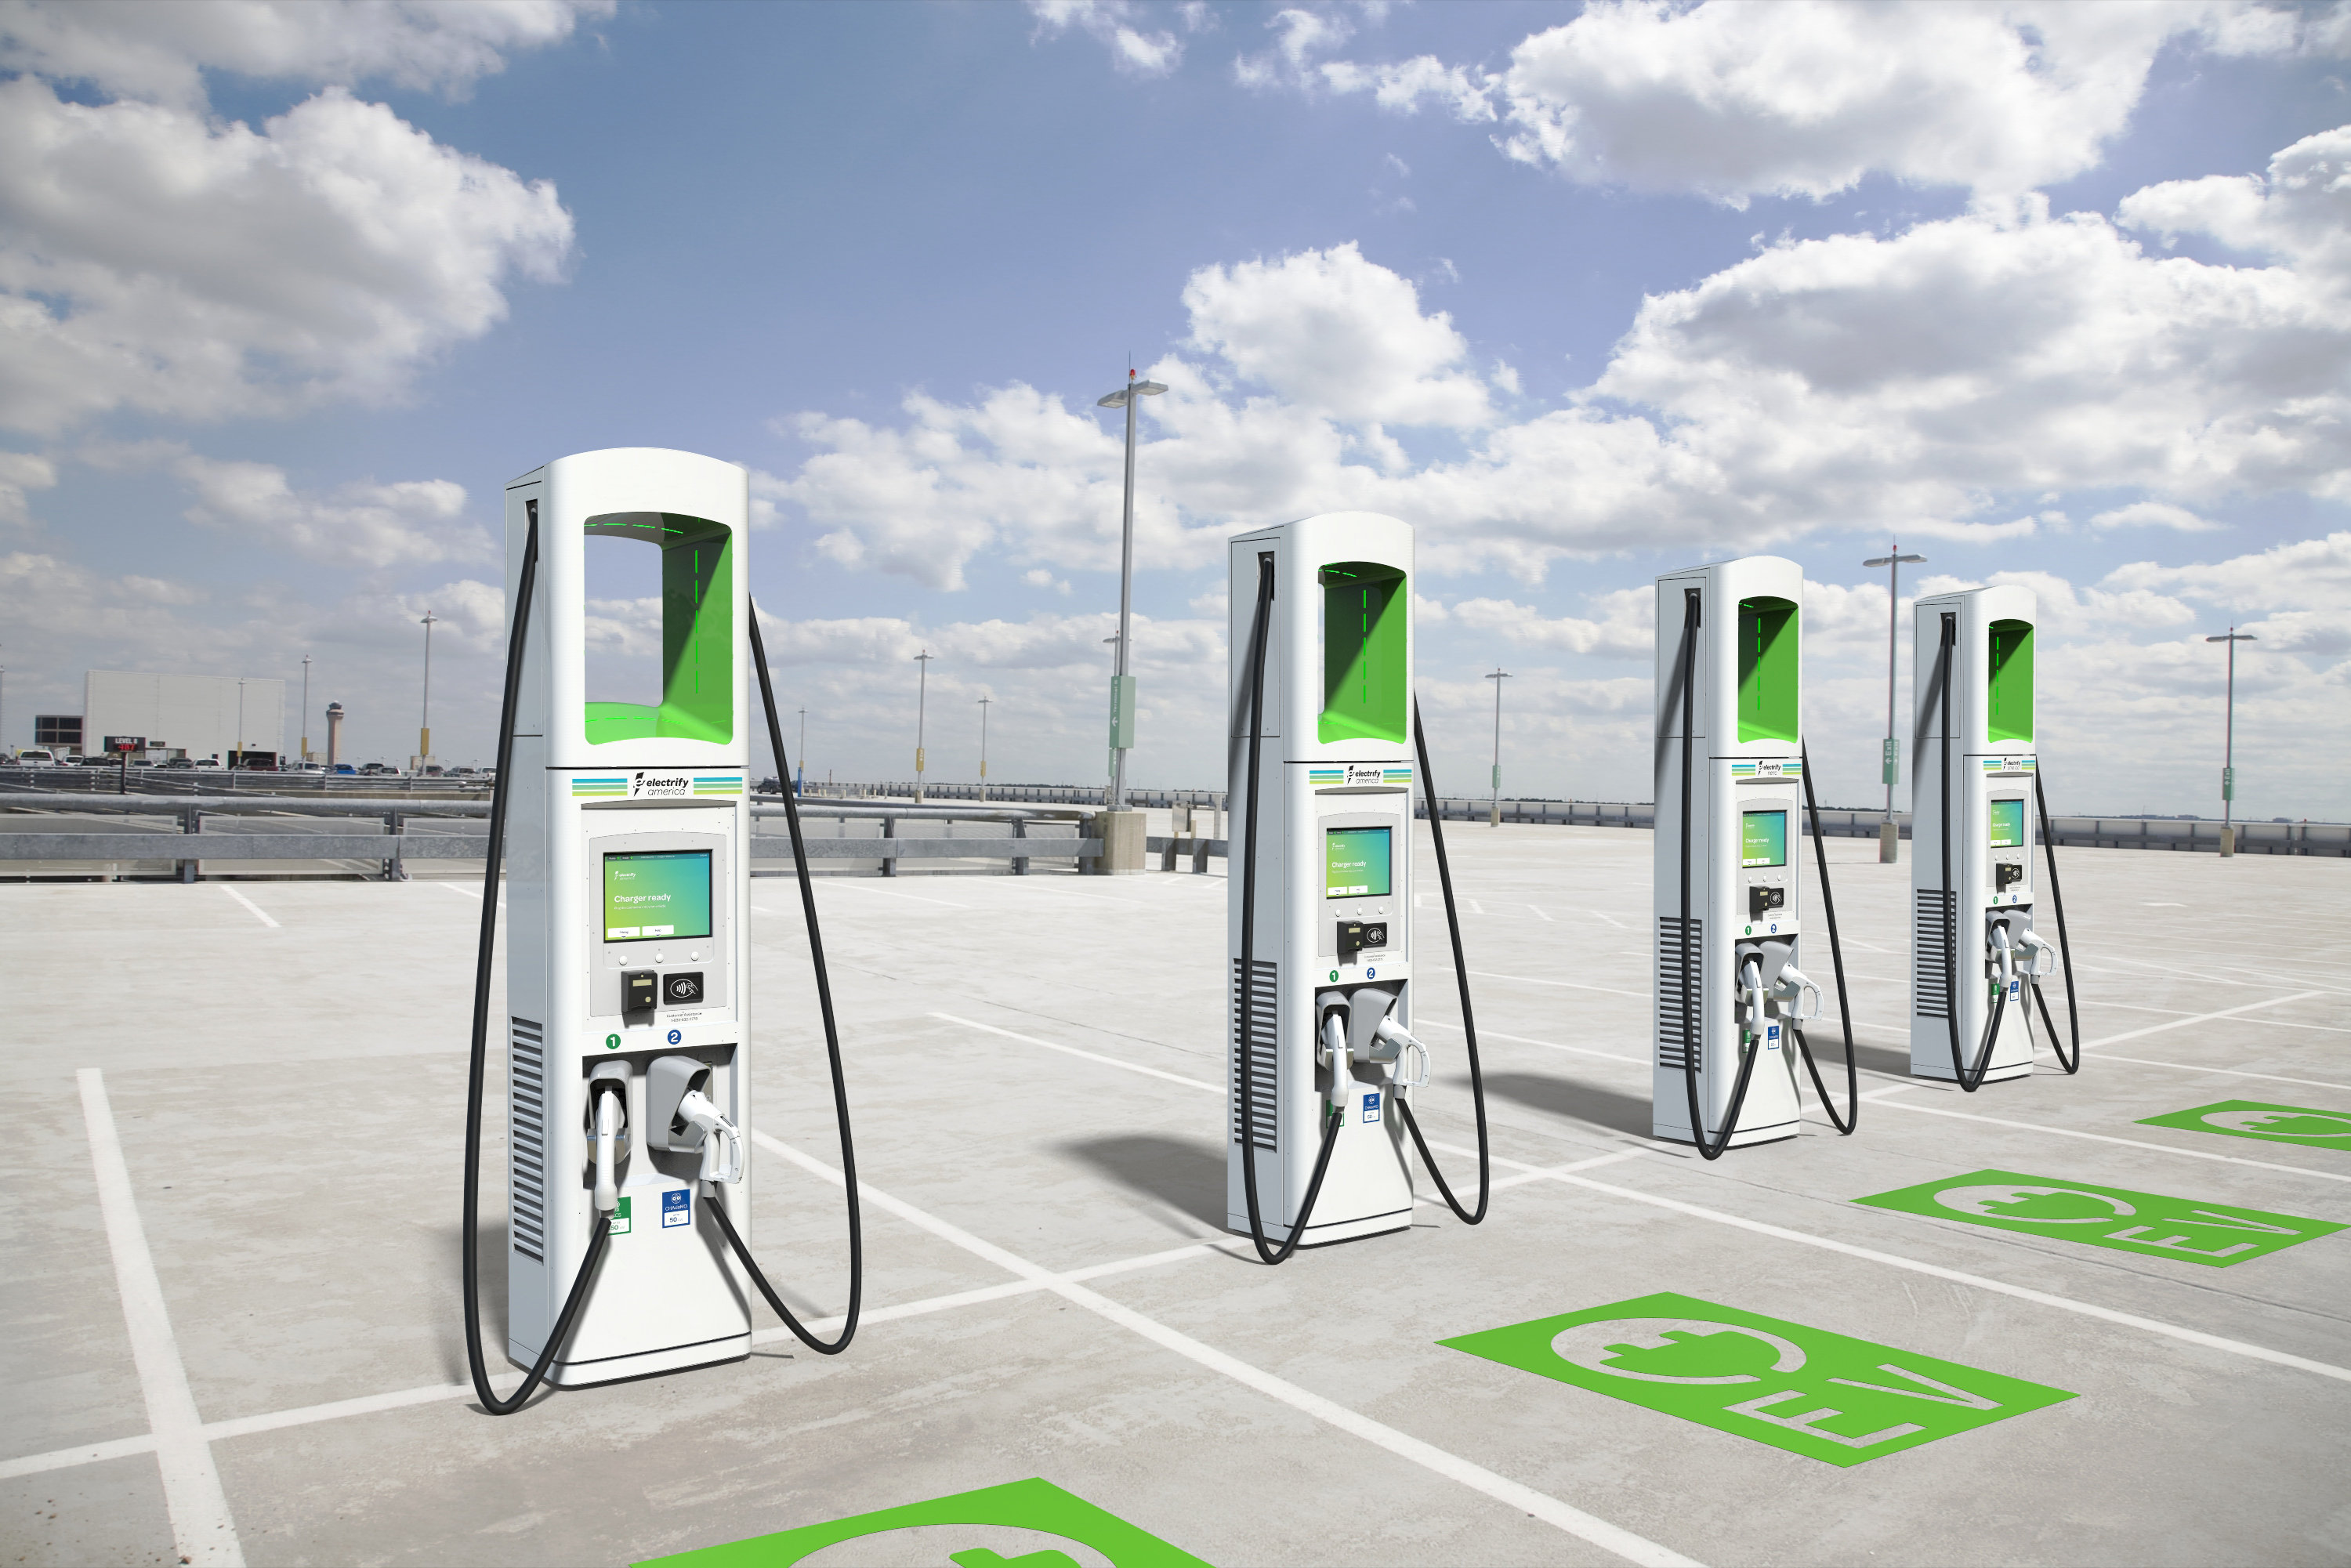 Electrify America will deploy 2,000 350kW fast chargers by the end